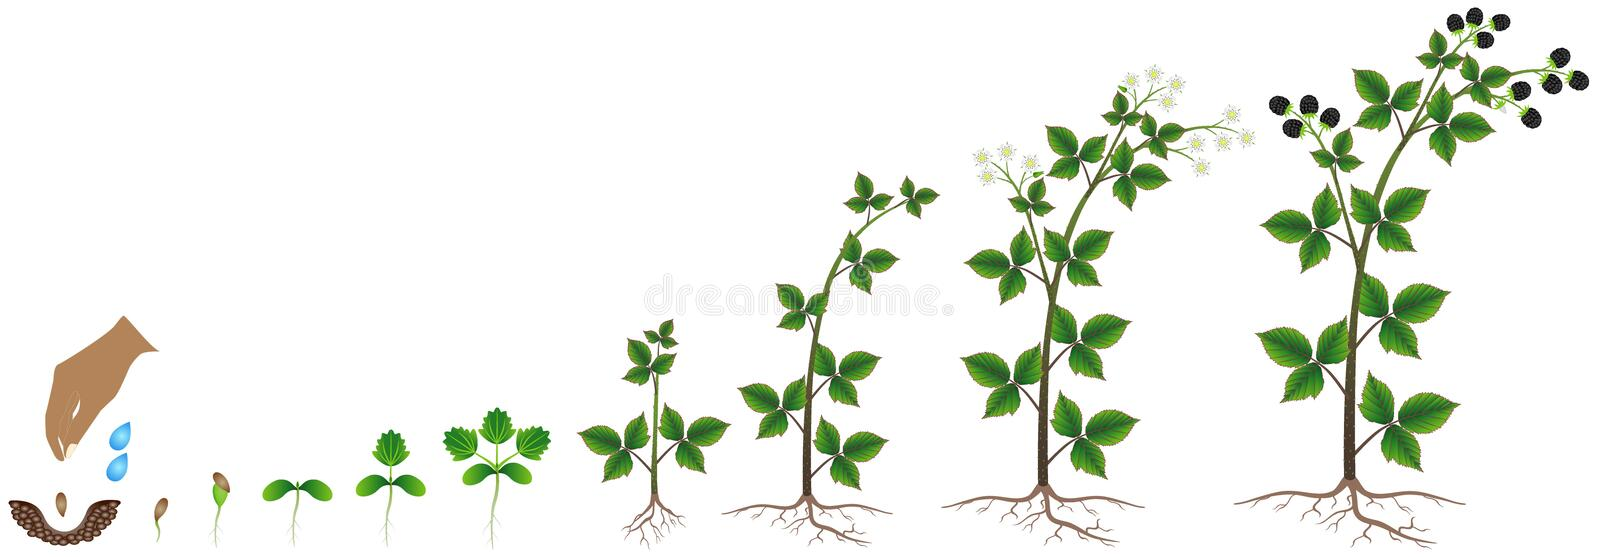 The growth cycle of blackberry seed on a white background. The growth cycle of blackberry seed on a white background, beautiful illustration royalty free illustration